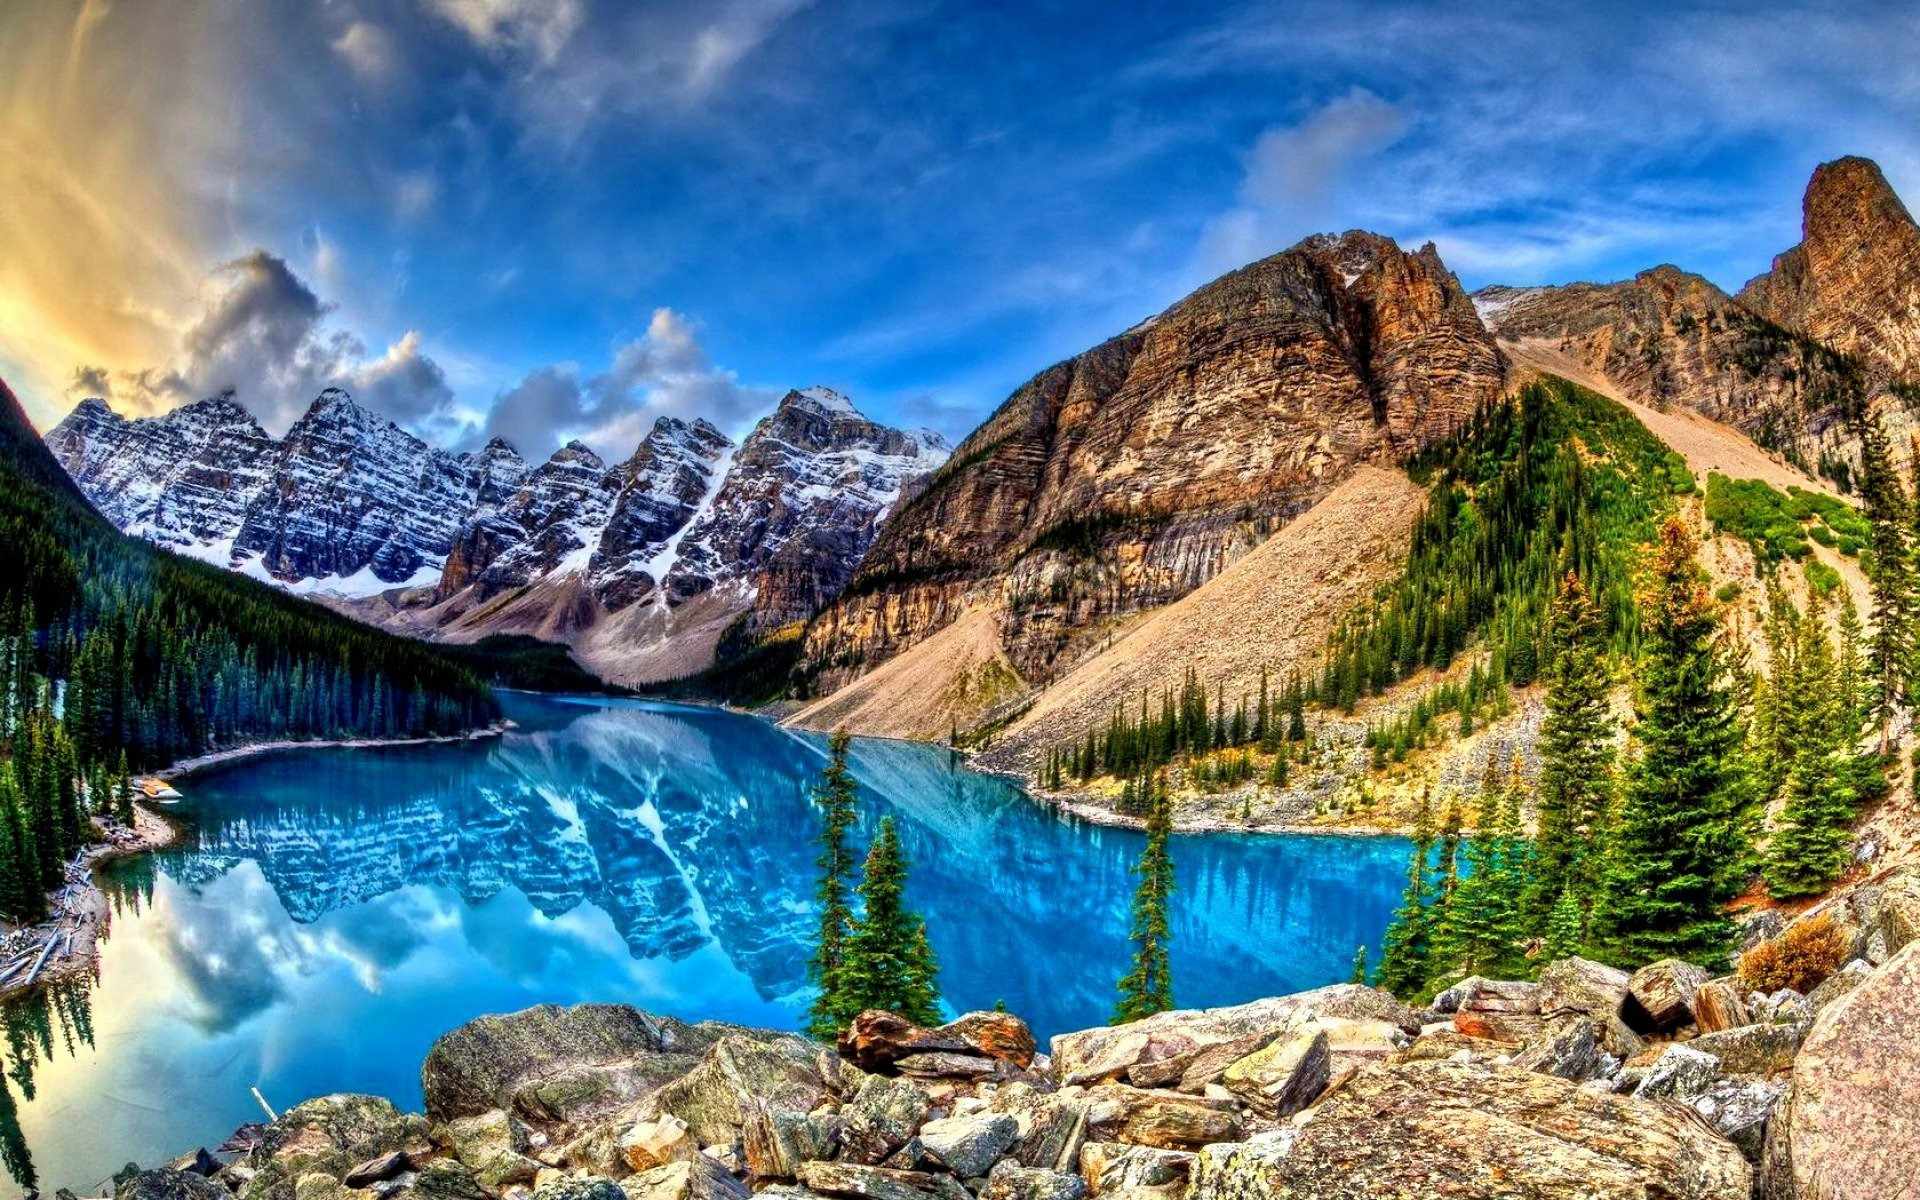 18 Rocky Mountains Hd Wallpapers Background Images Wallpaper Abyss